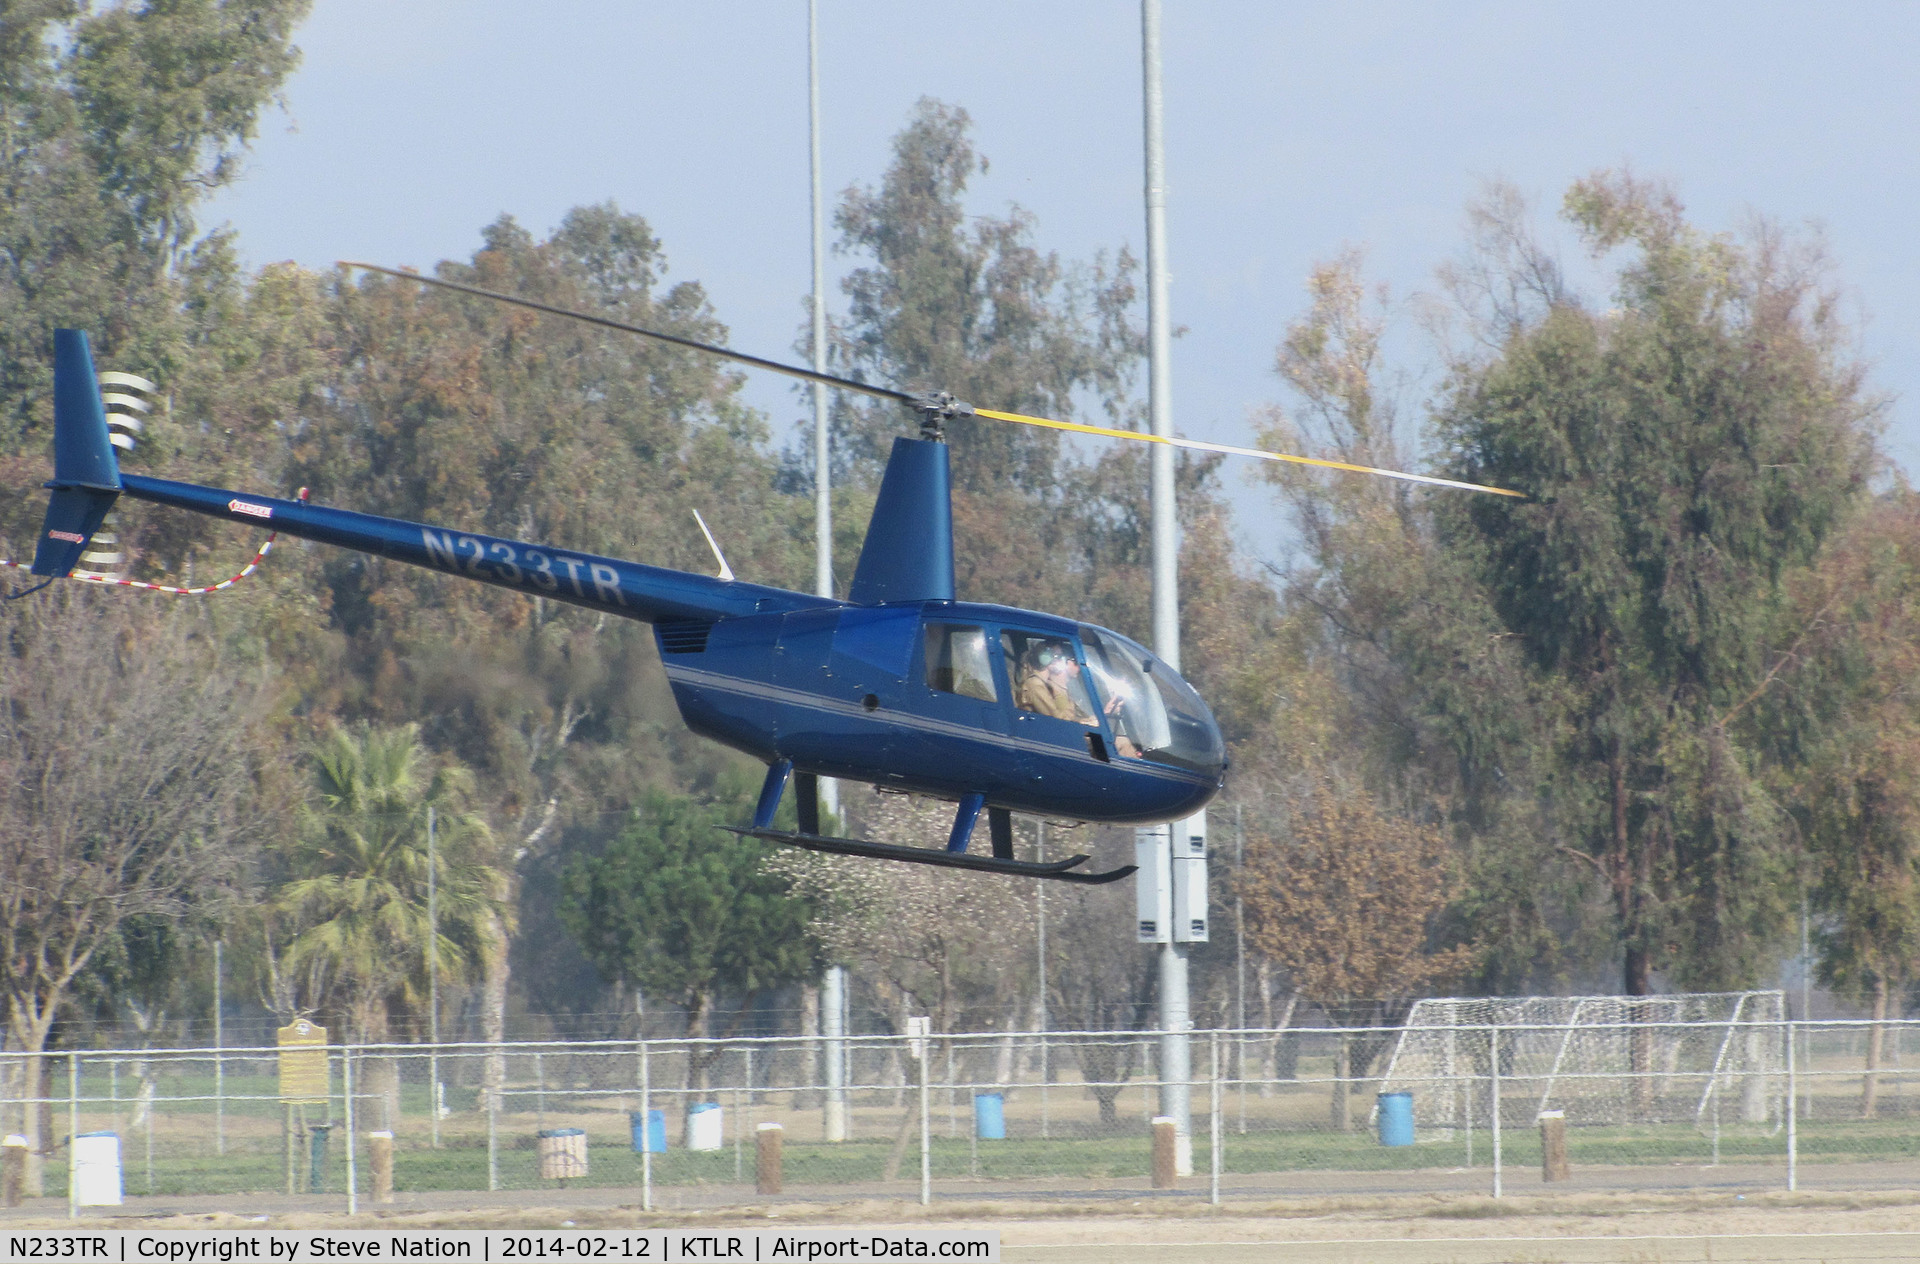 N233TR, 2003 Robinson R44 Raven II C/N 10062, Sierra Flite Robinson R44 II @ Mefford Field (Tulare, CA) for helicopter rides over the 2014 International Ag Expo